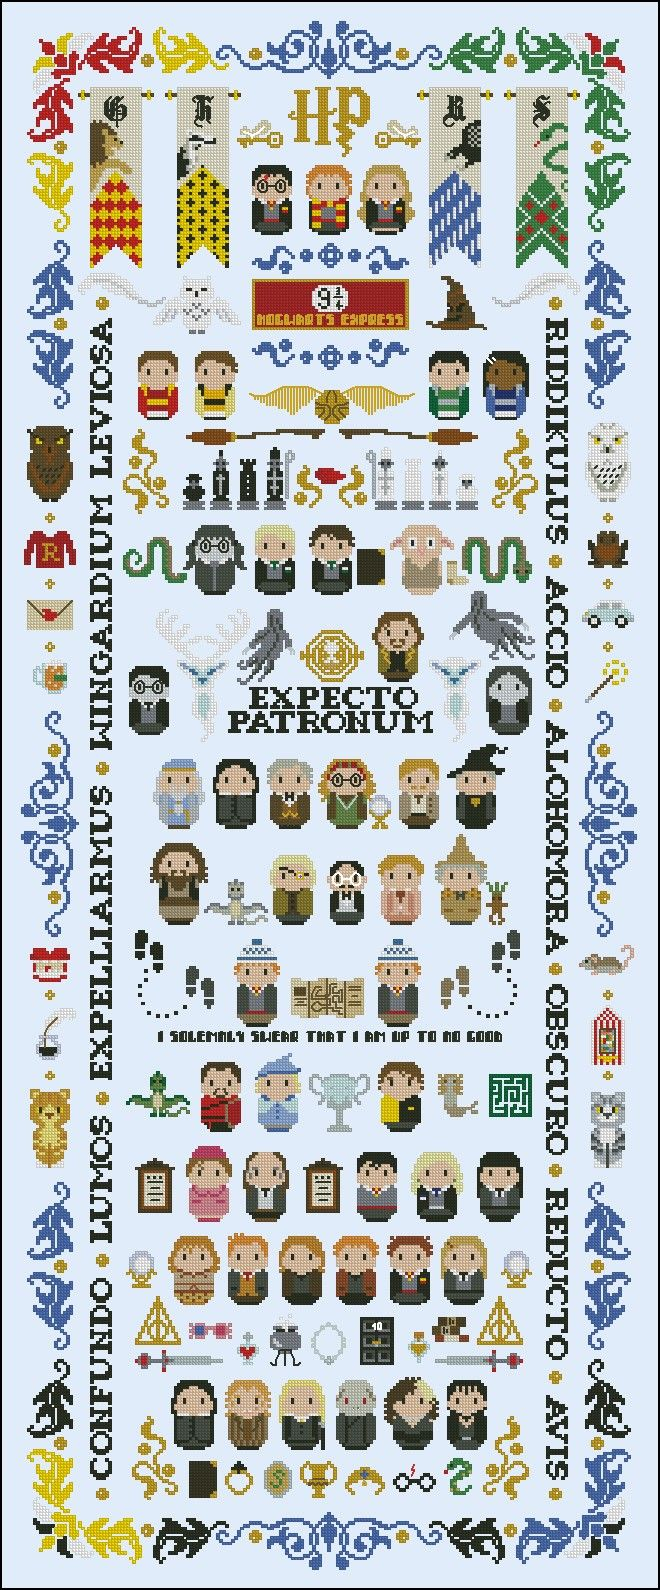 Harry Potter - Giant Version - Mini People - Cross Stitch Patterns - Products